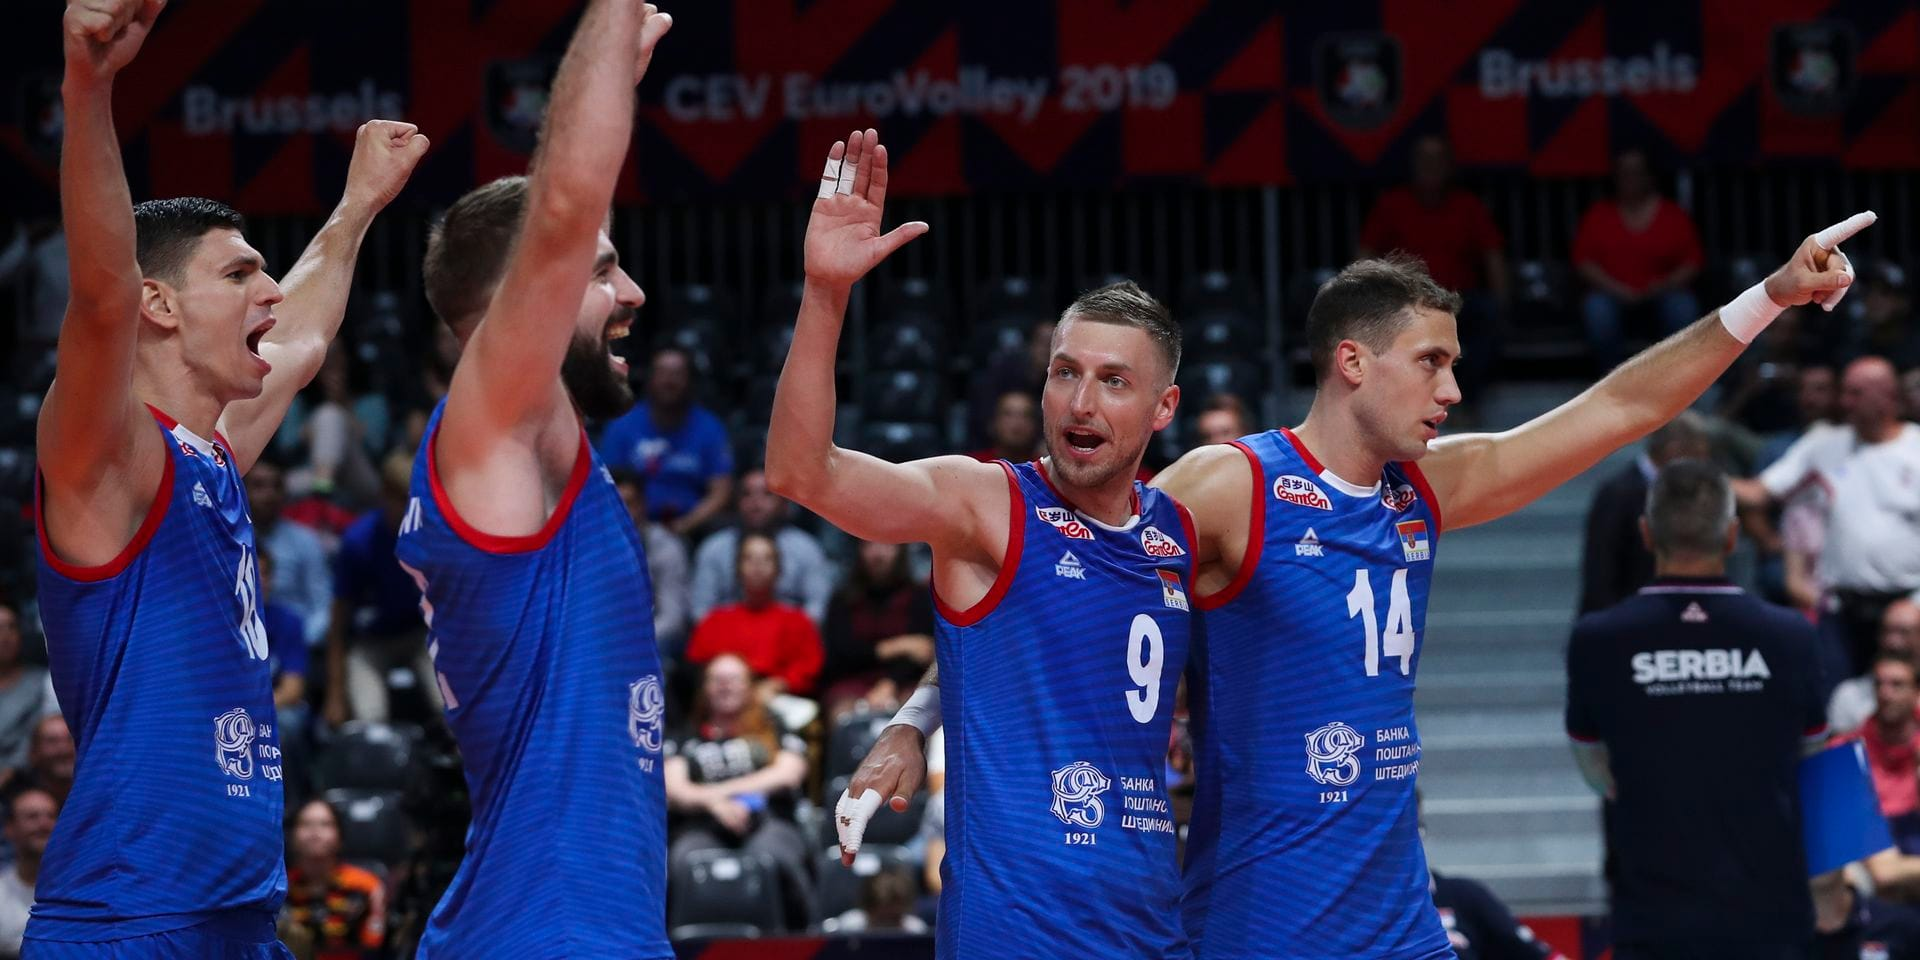 Serbia players celebrate after beating Germany in the European Volleyball Championship group B match between Serbia and Germany at the Paleis 12 hall in Brussels, Friday, Sept. 13, 2019. Serbia won the match 3-0. (AP Photo/Francisco Seco)